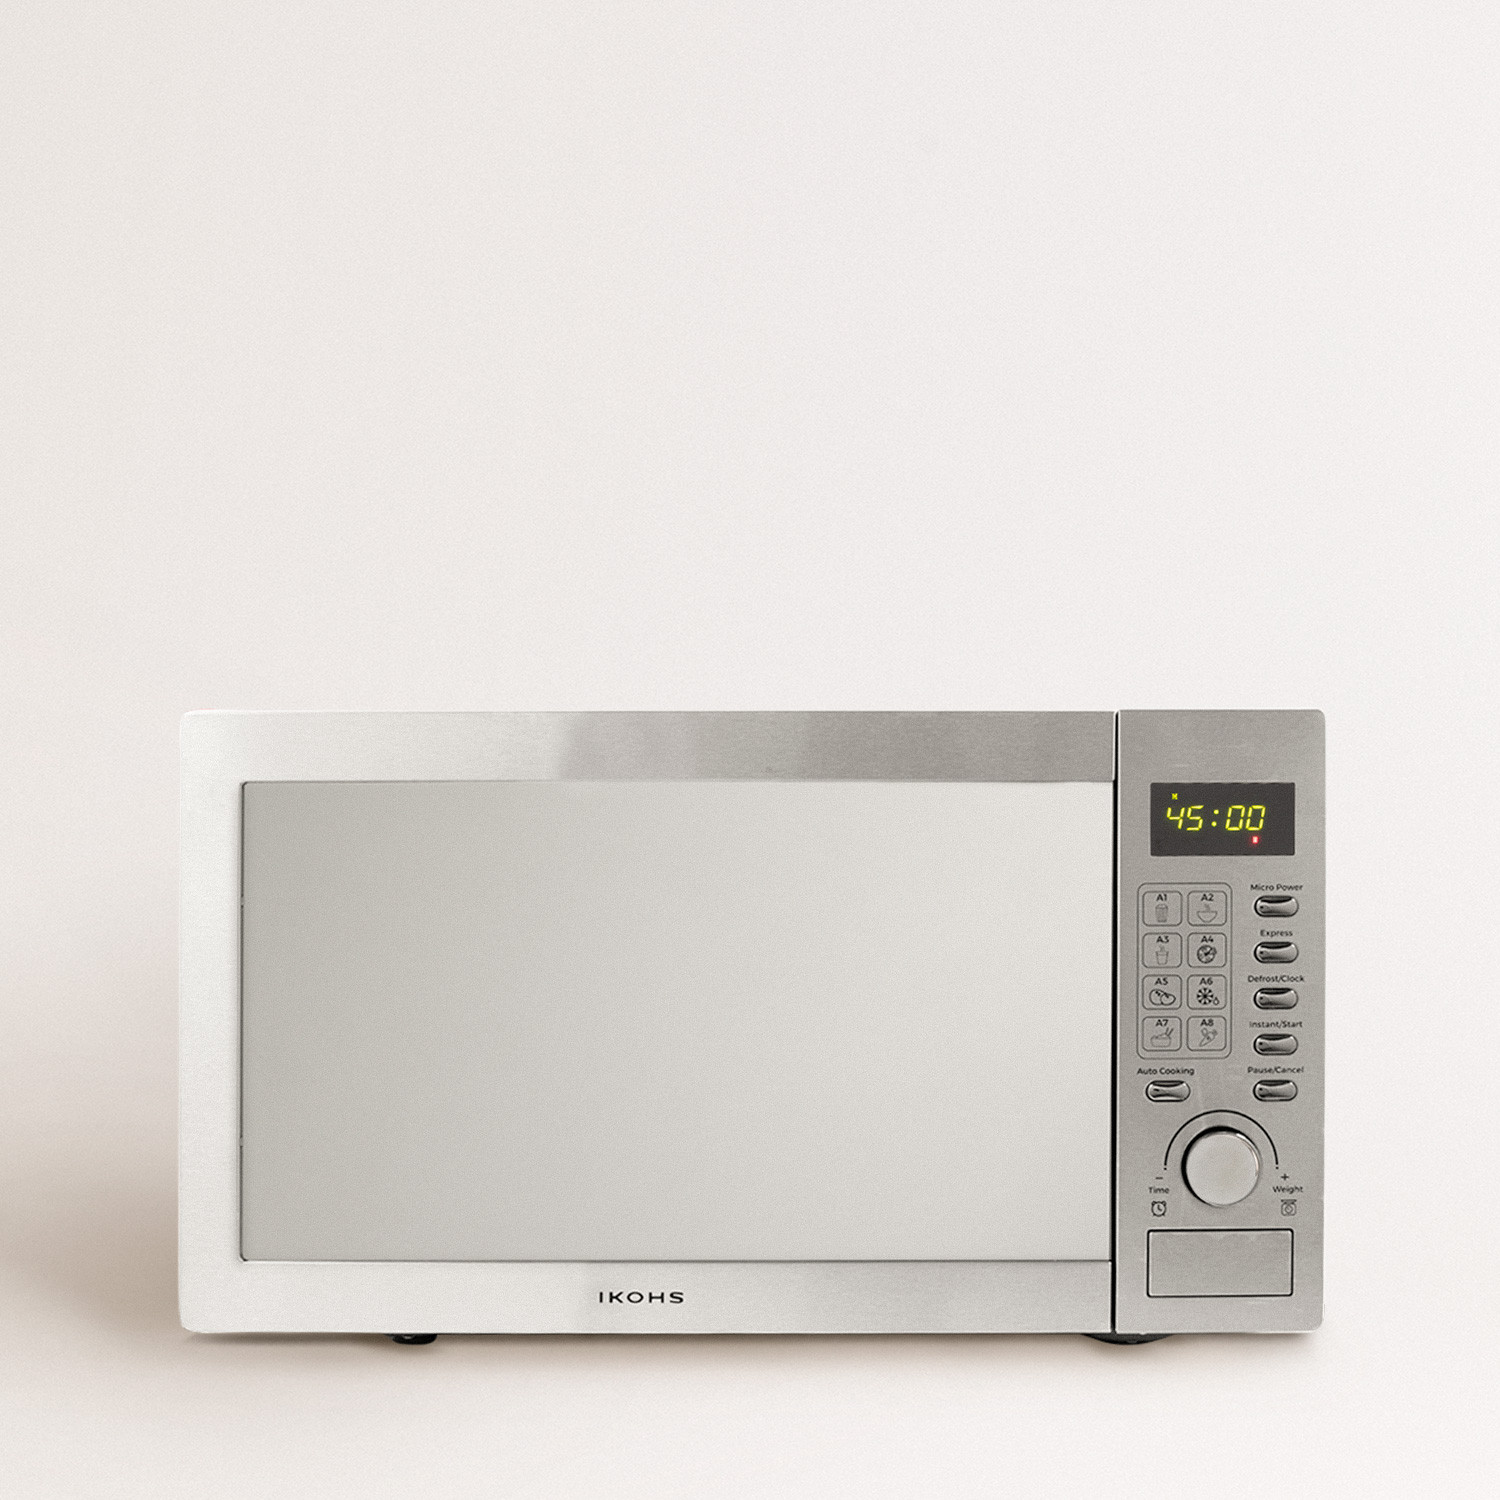 Black Friday Microwaves Deals Uk 2021